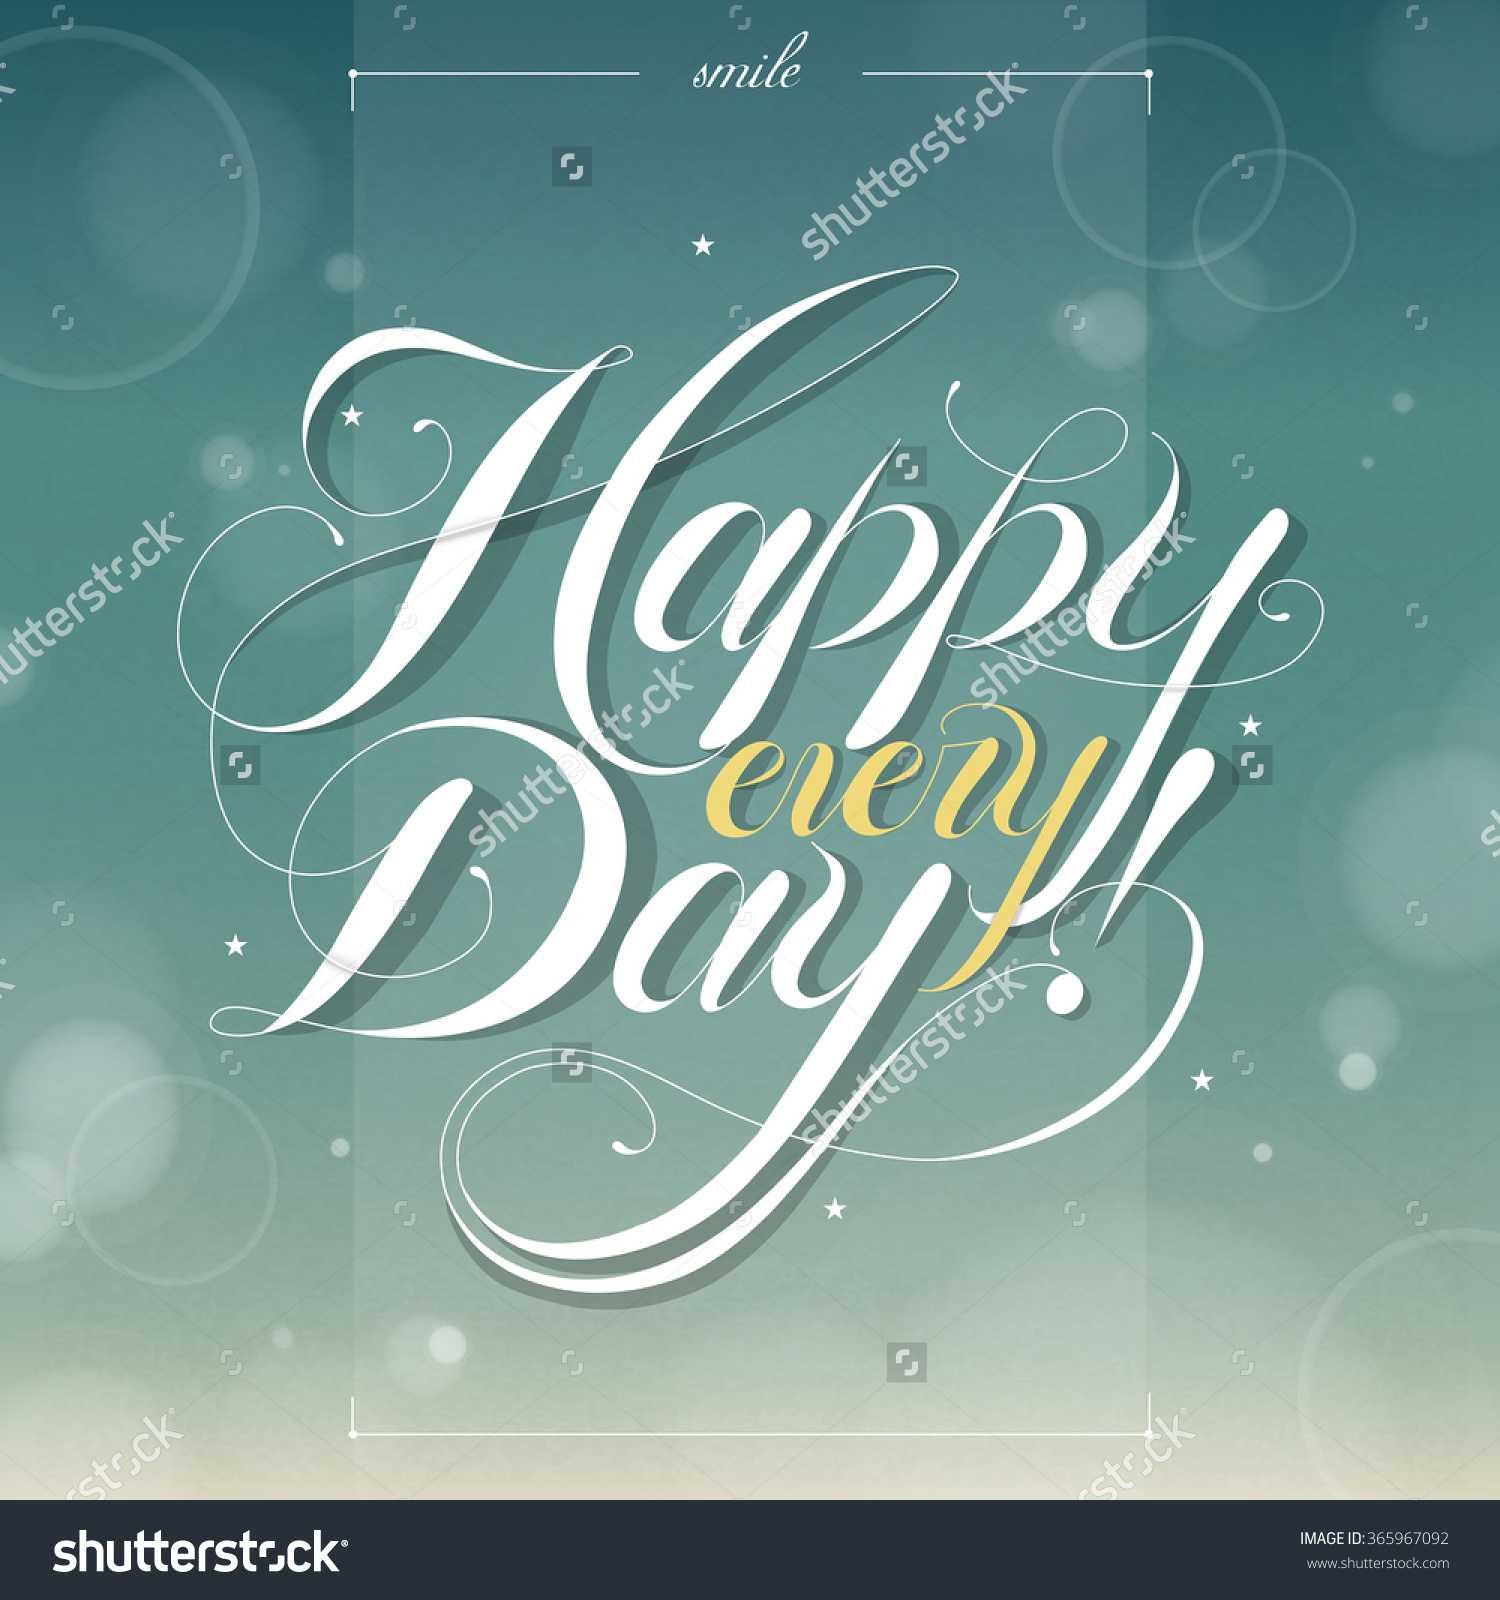 Happy Every Day Calligraphy Design Over Blurred Background